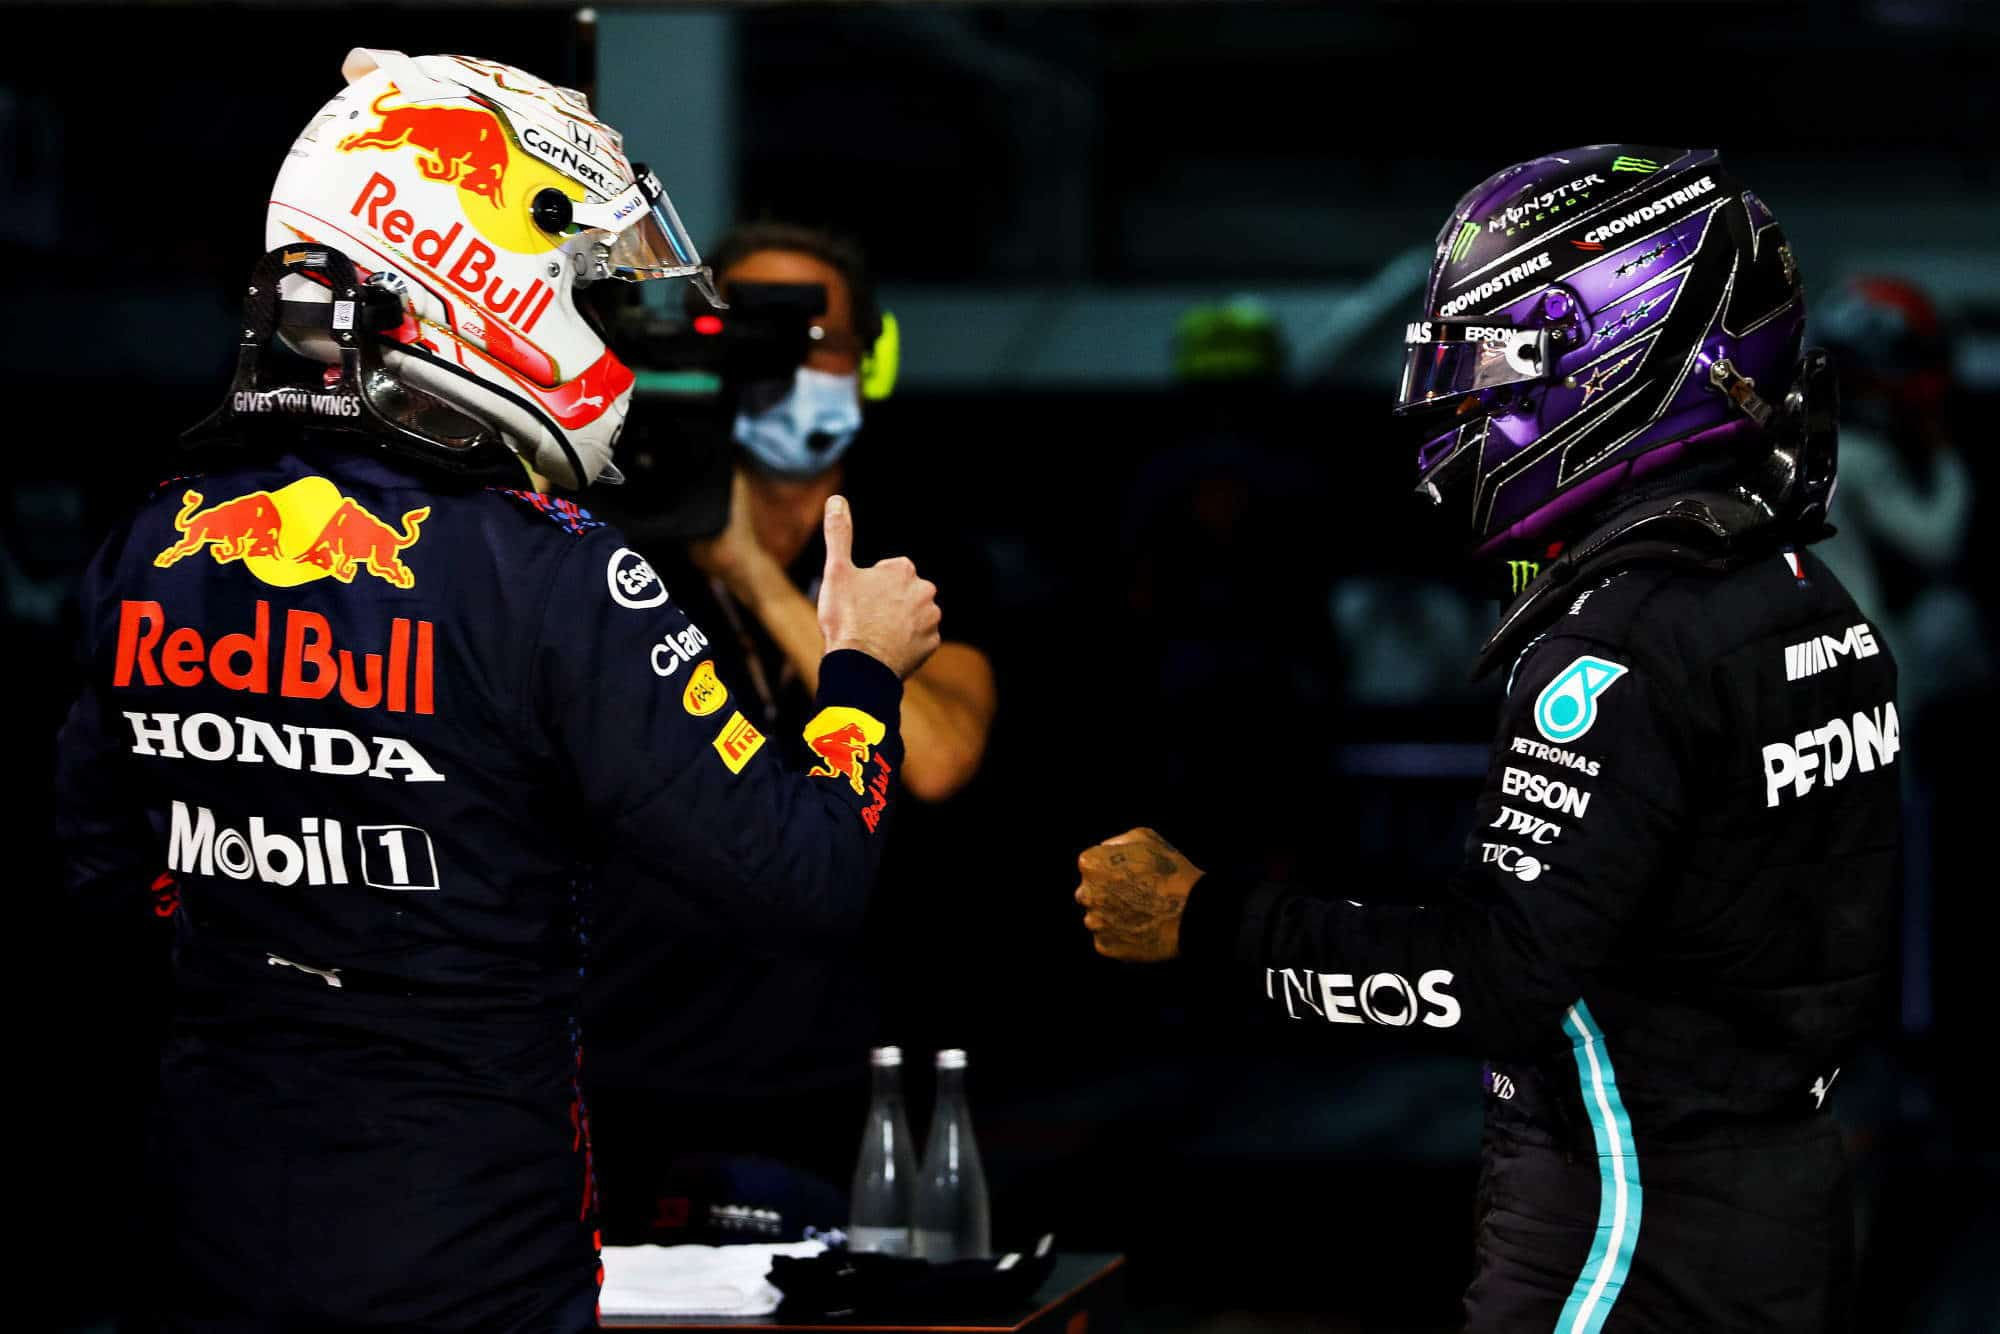 2021 Bahrain GP Hamilton Mercedes Verstappen Red Bull after the race out of ther cars Photo Red Bull